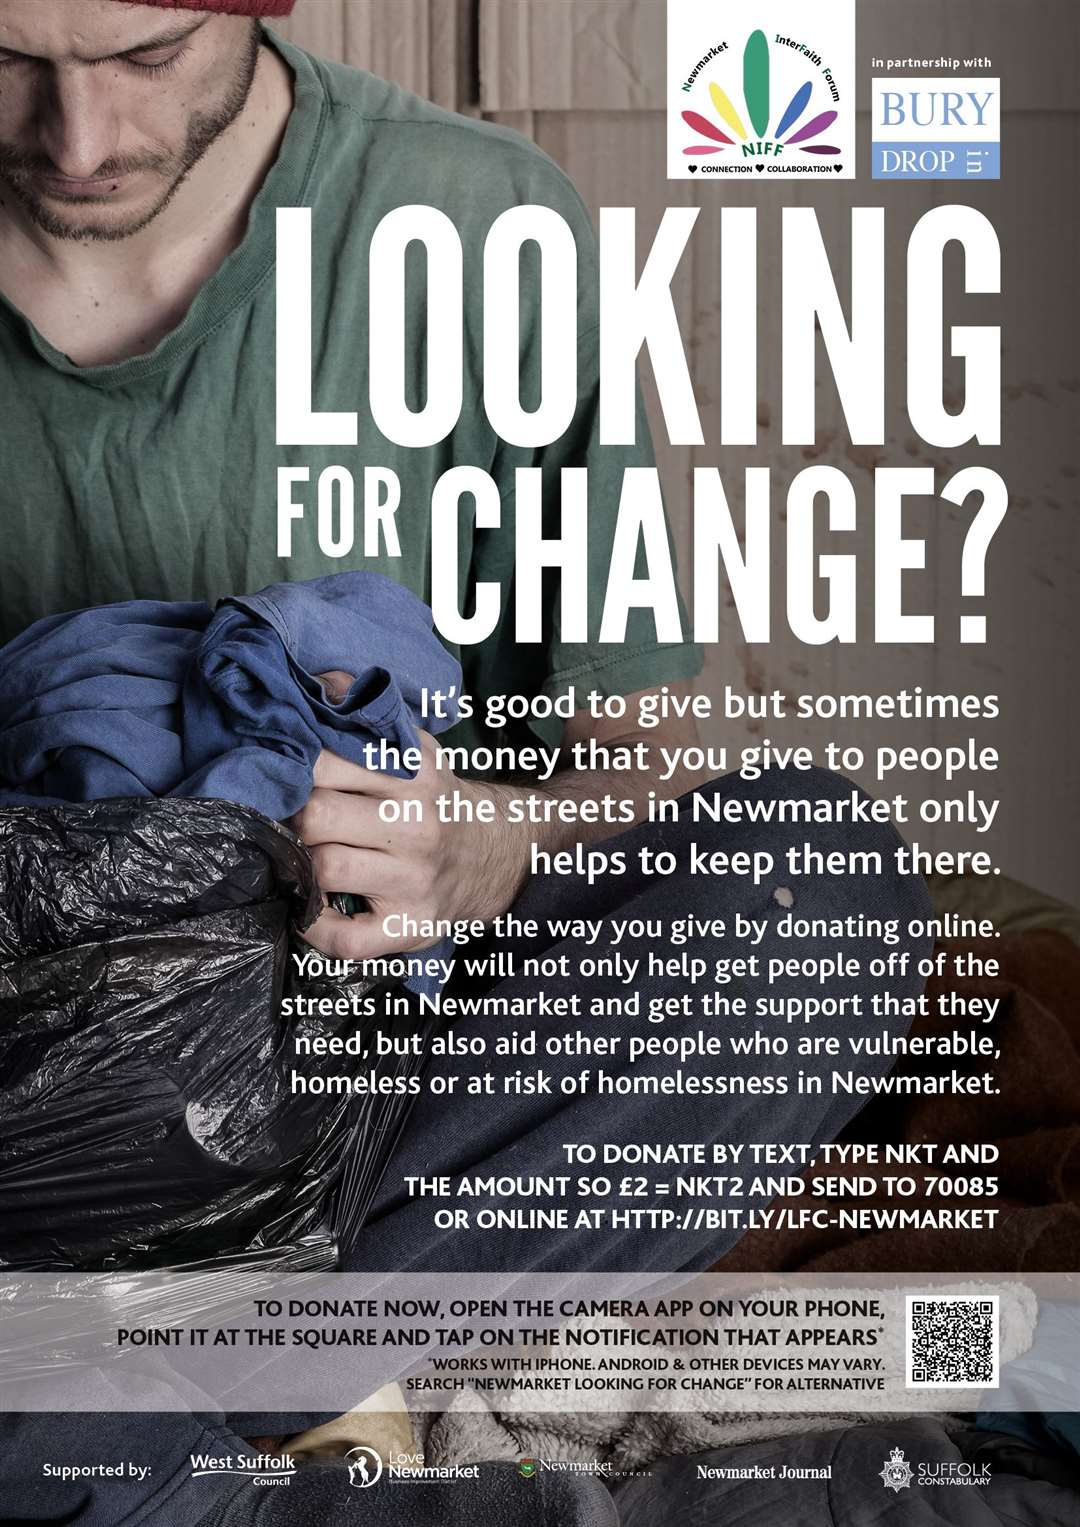 Looking for Change poster (7828226)